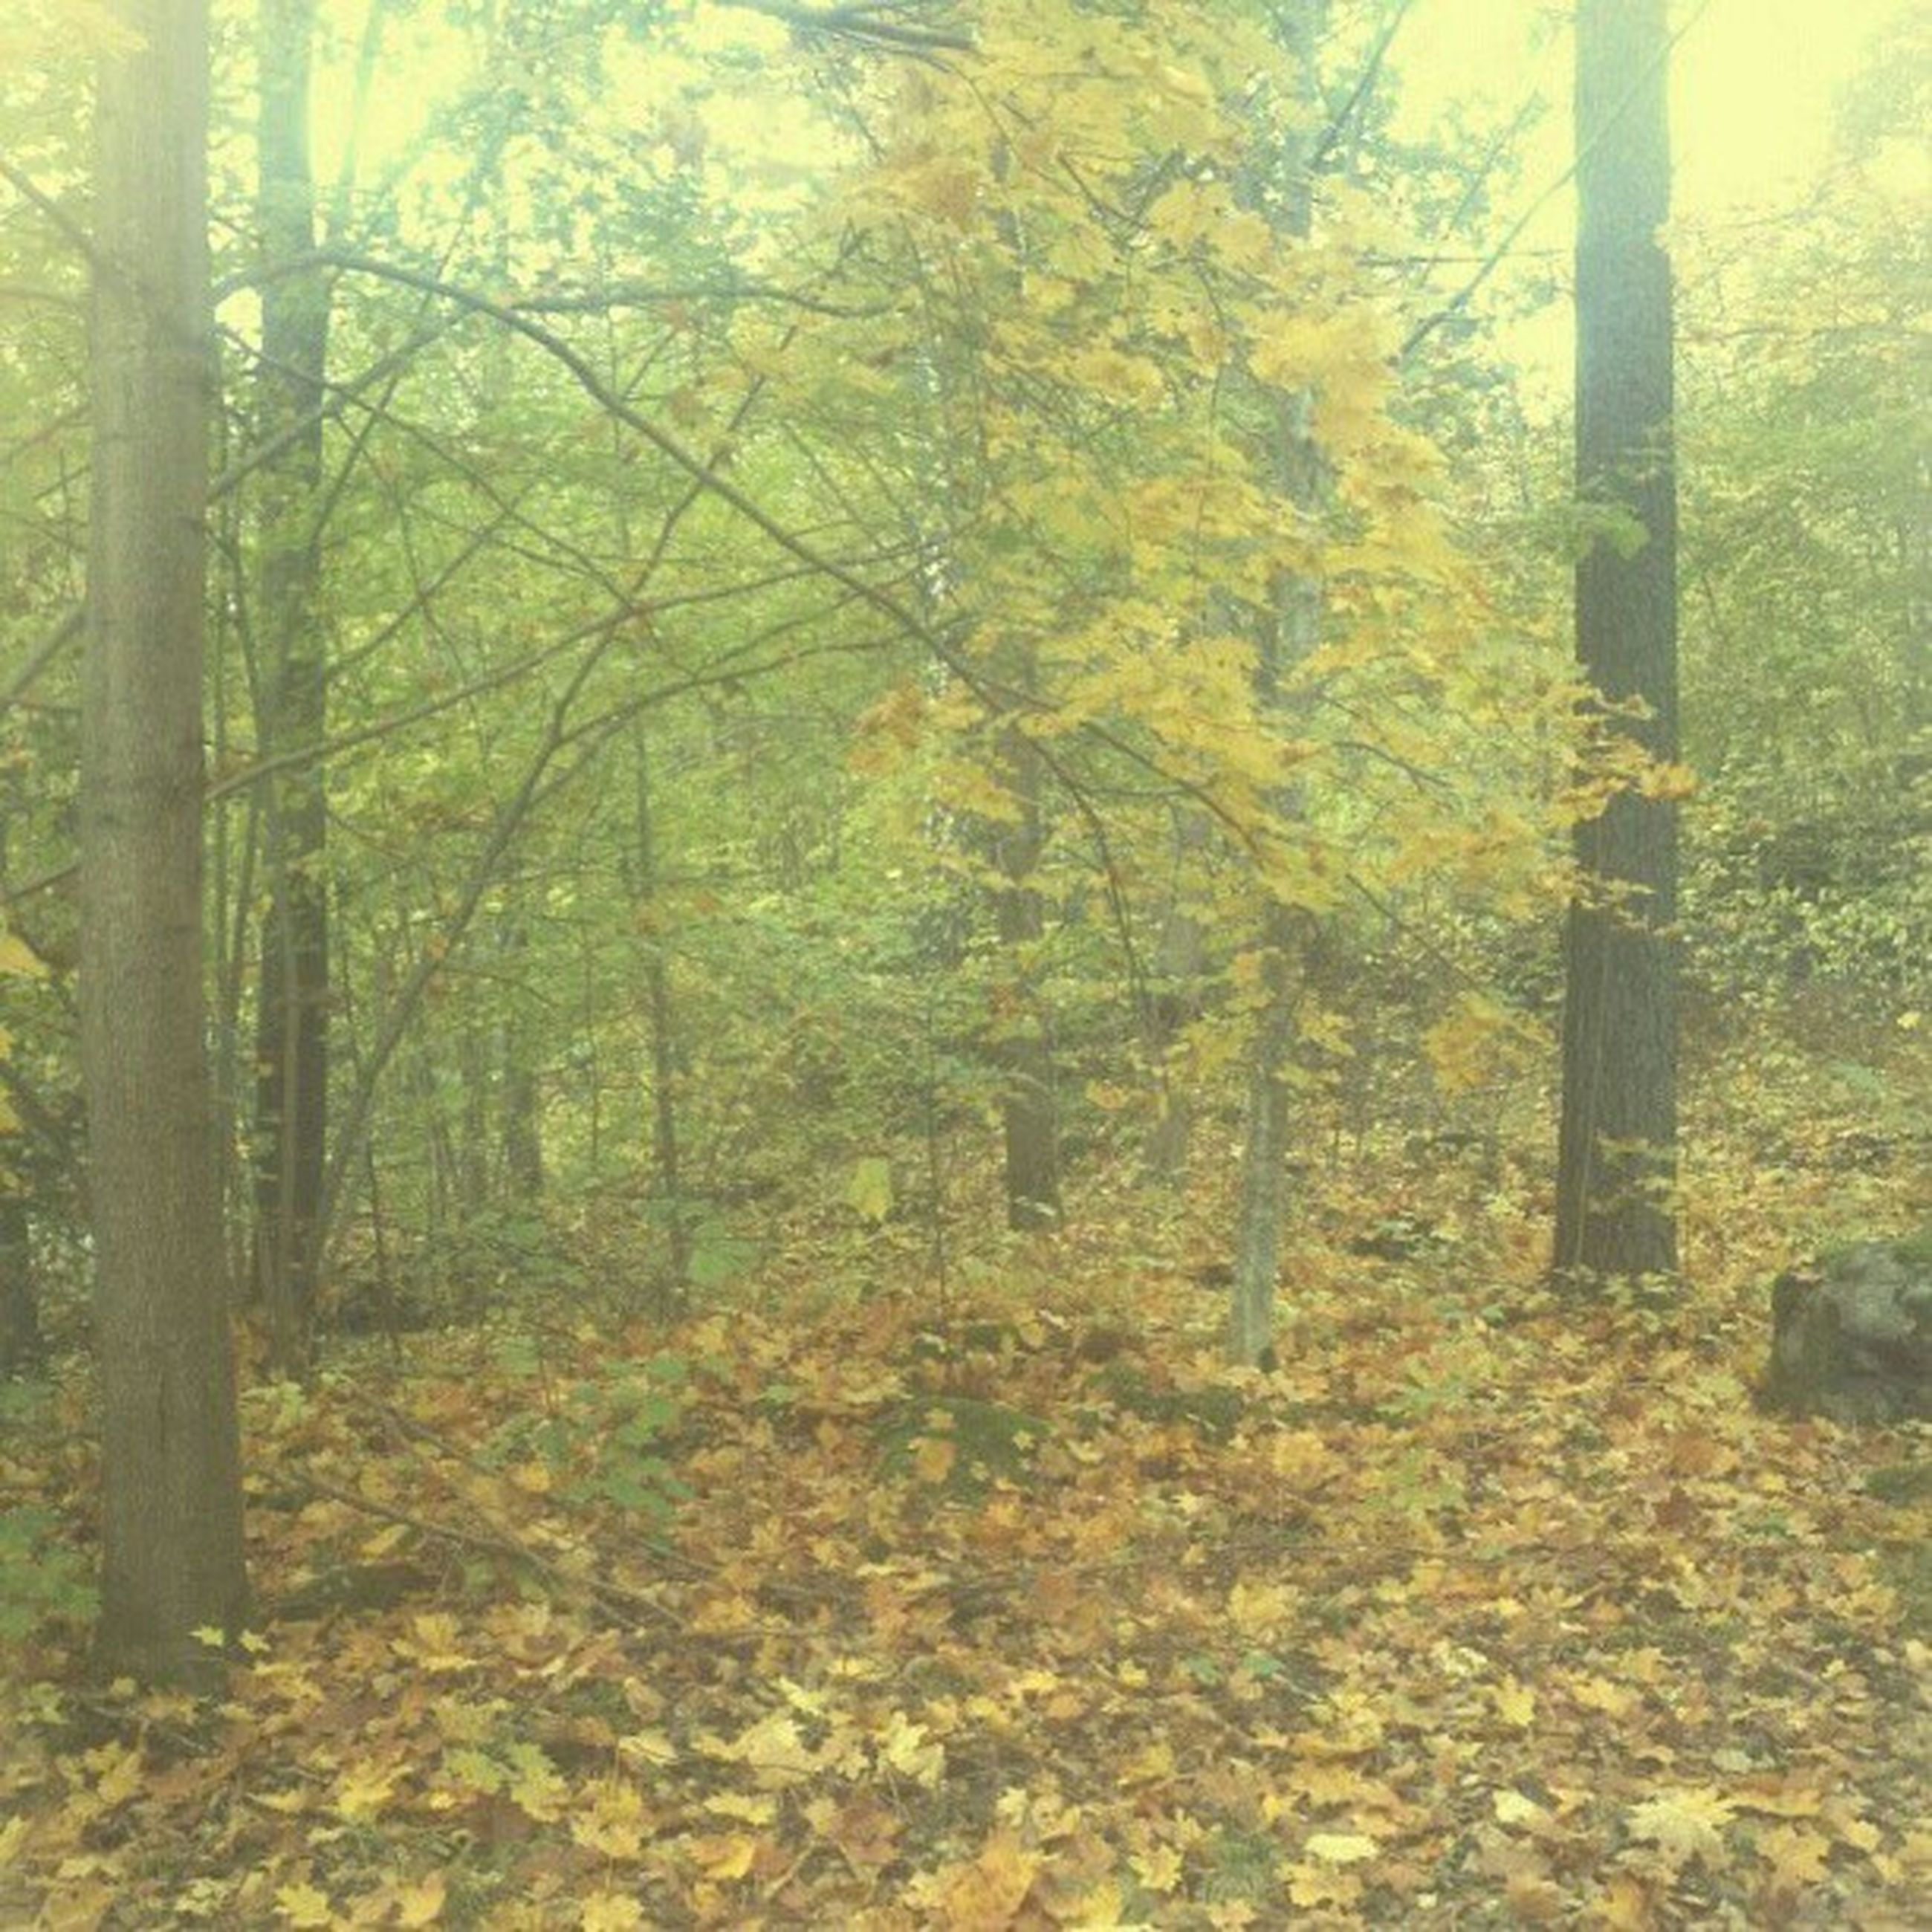 tree, forest, tranquility, autumn, growth, tranquil scene, nature, tree trunk, change, beauty in nature, woodland, scenics, season, branch, non-urban scene, yellow, leaf, landscape, day, outdoors